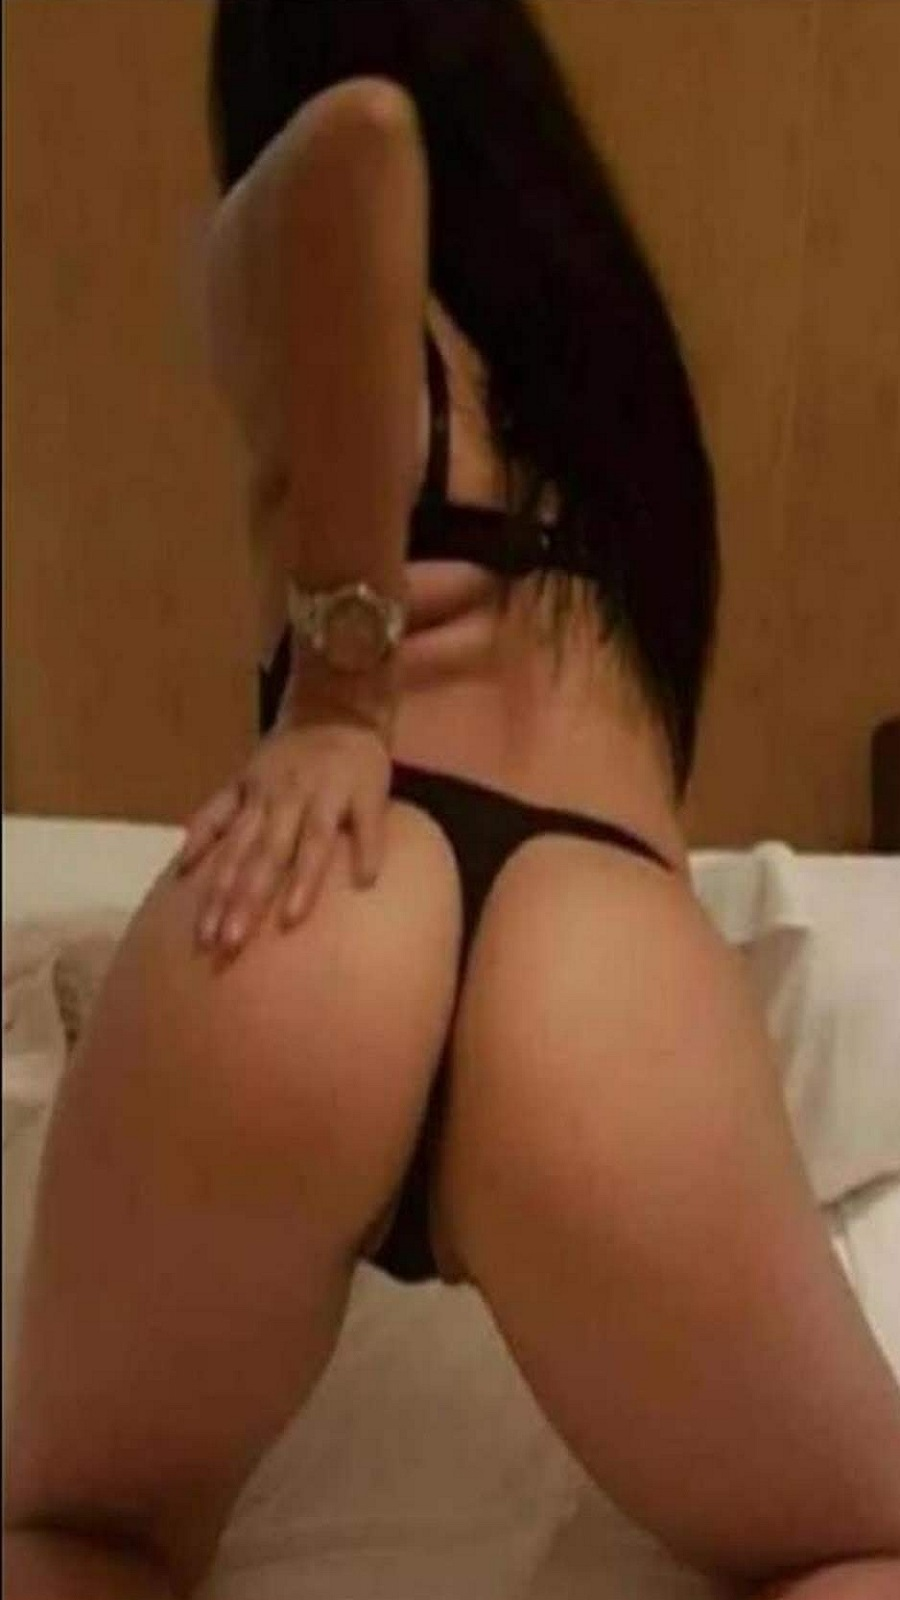 If you are looking for the perfect companion tonight give us a call on 07412621234 to book Melanie for the best night of your life.